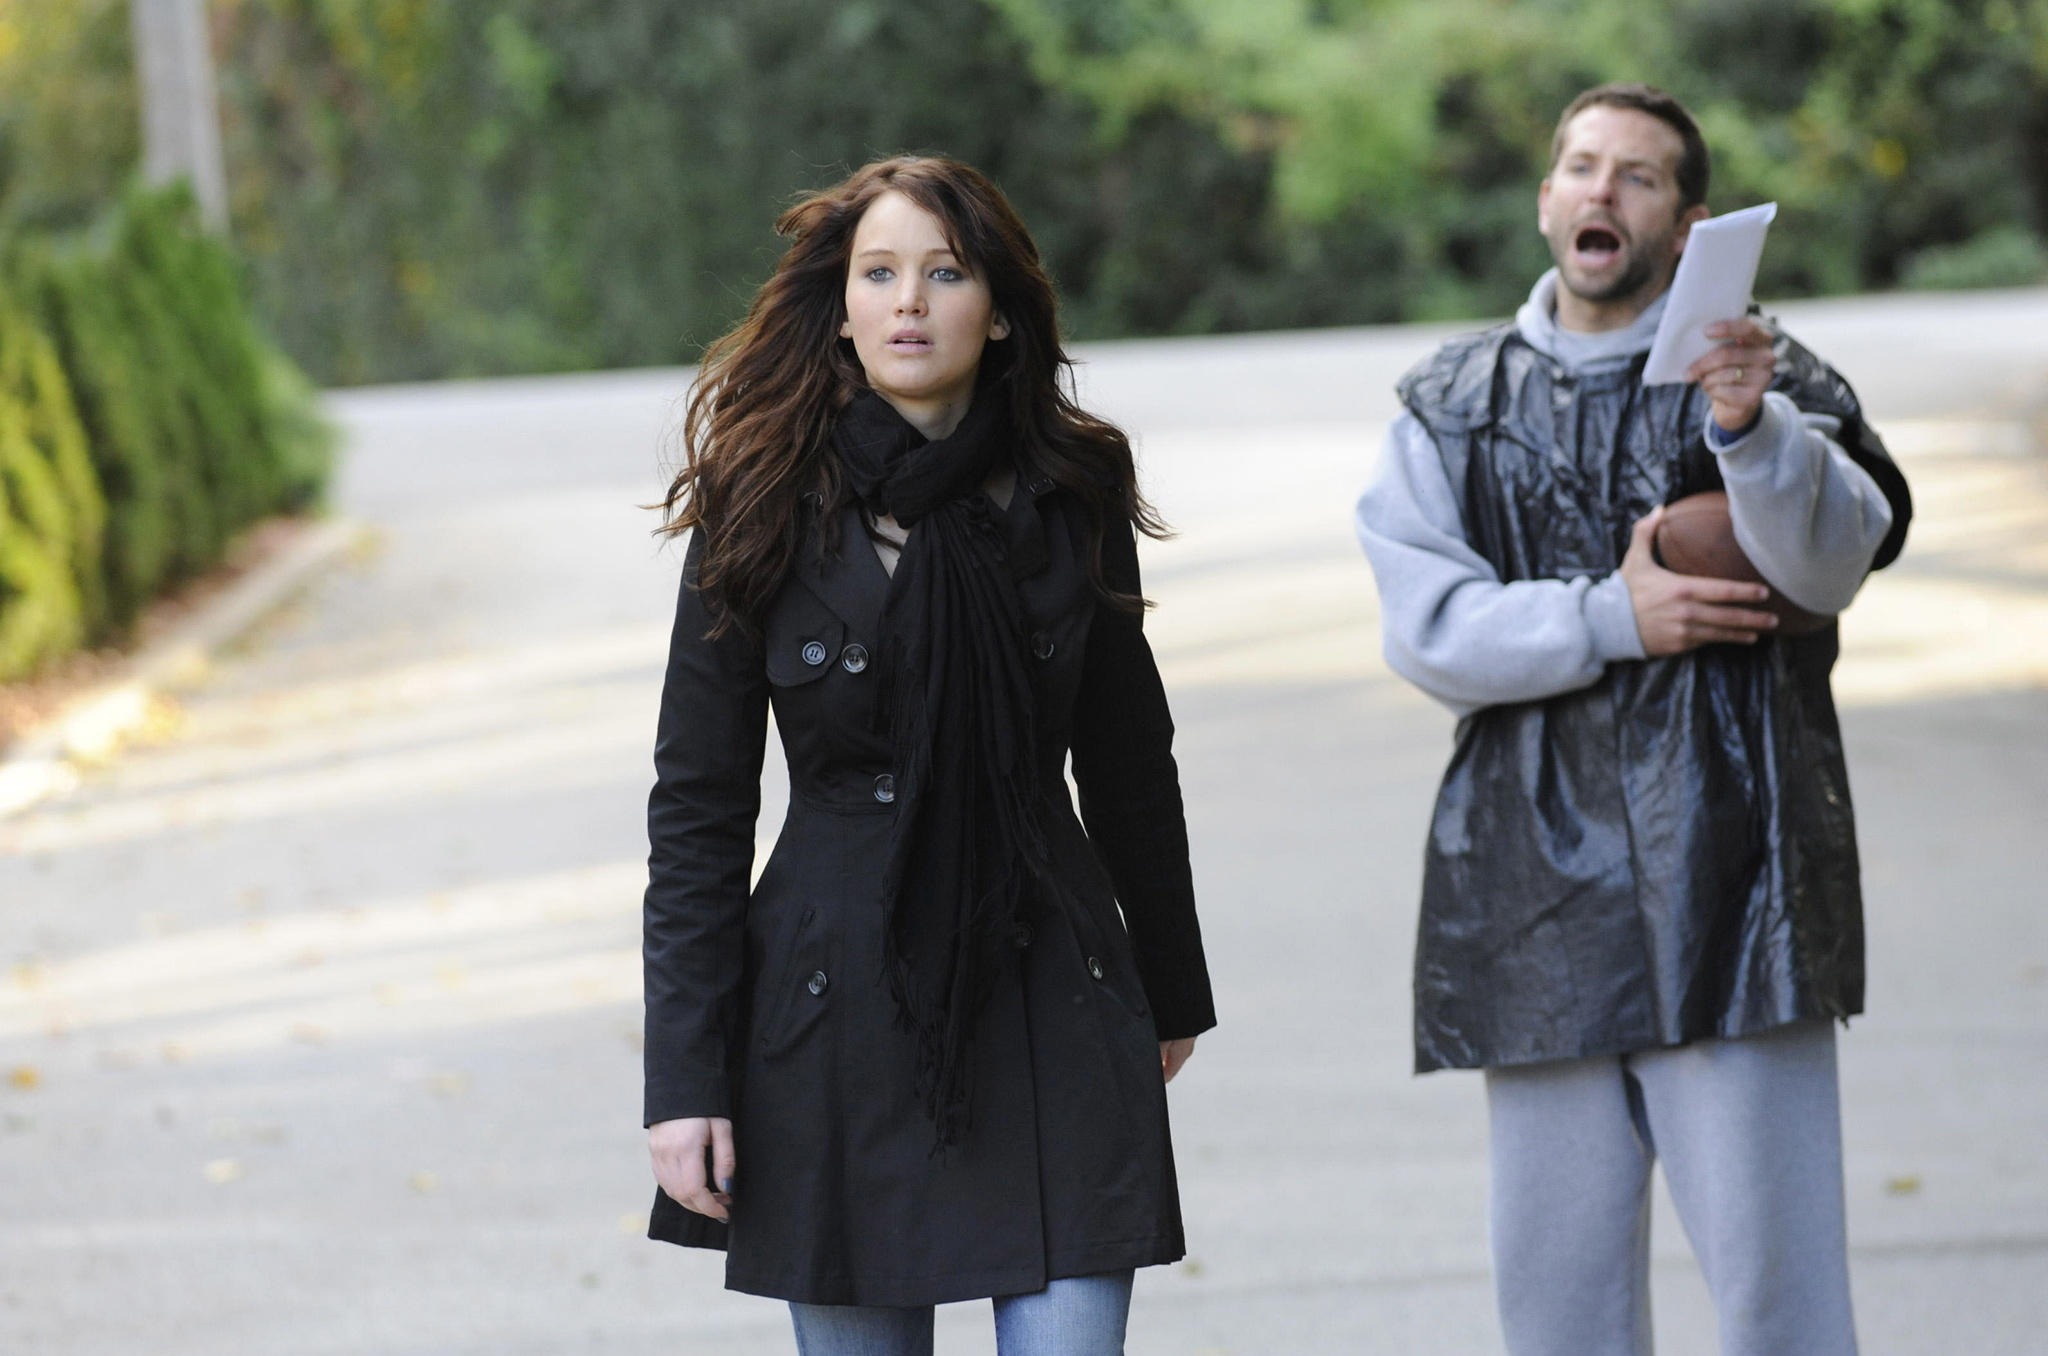 Romantic movie: Silver Linings Playbook